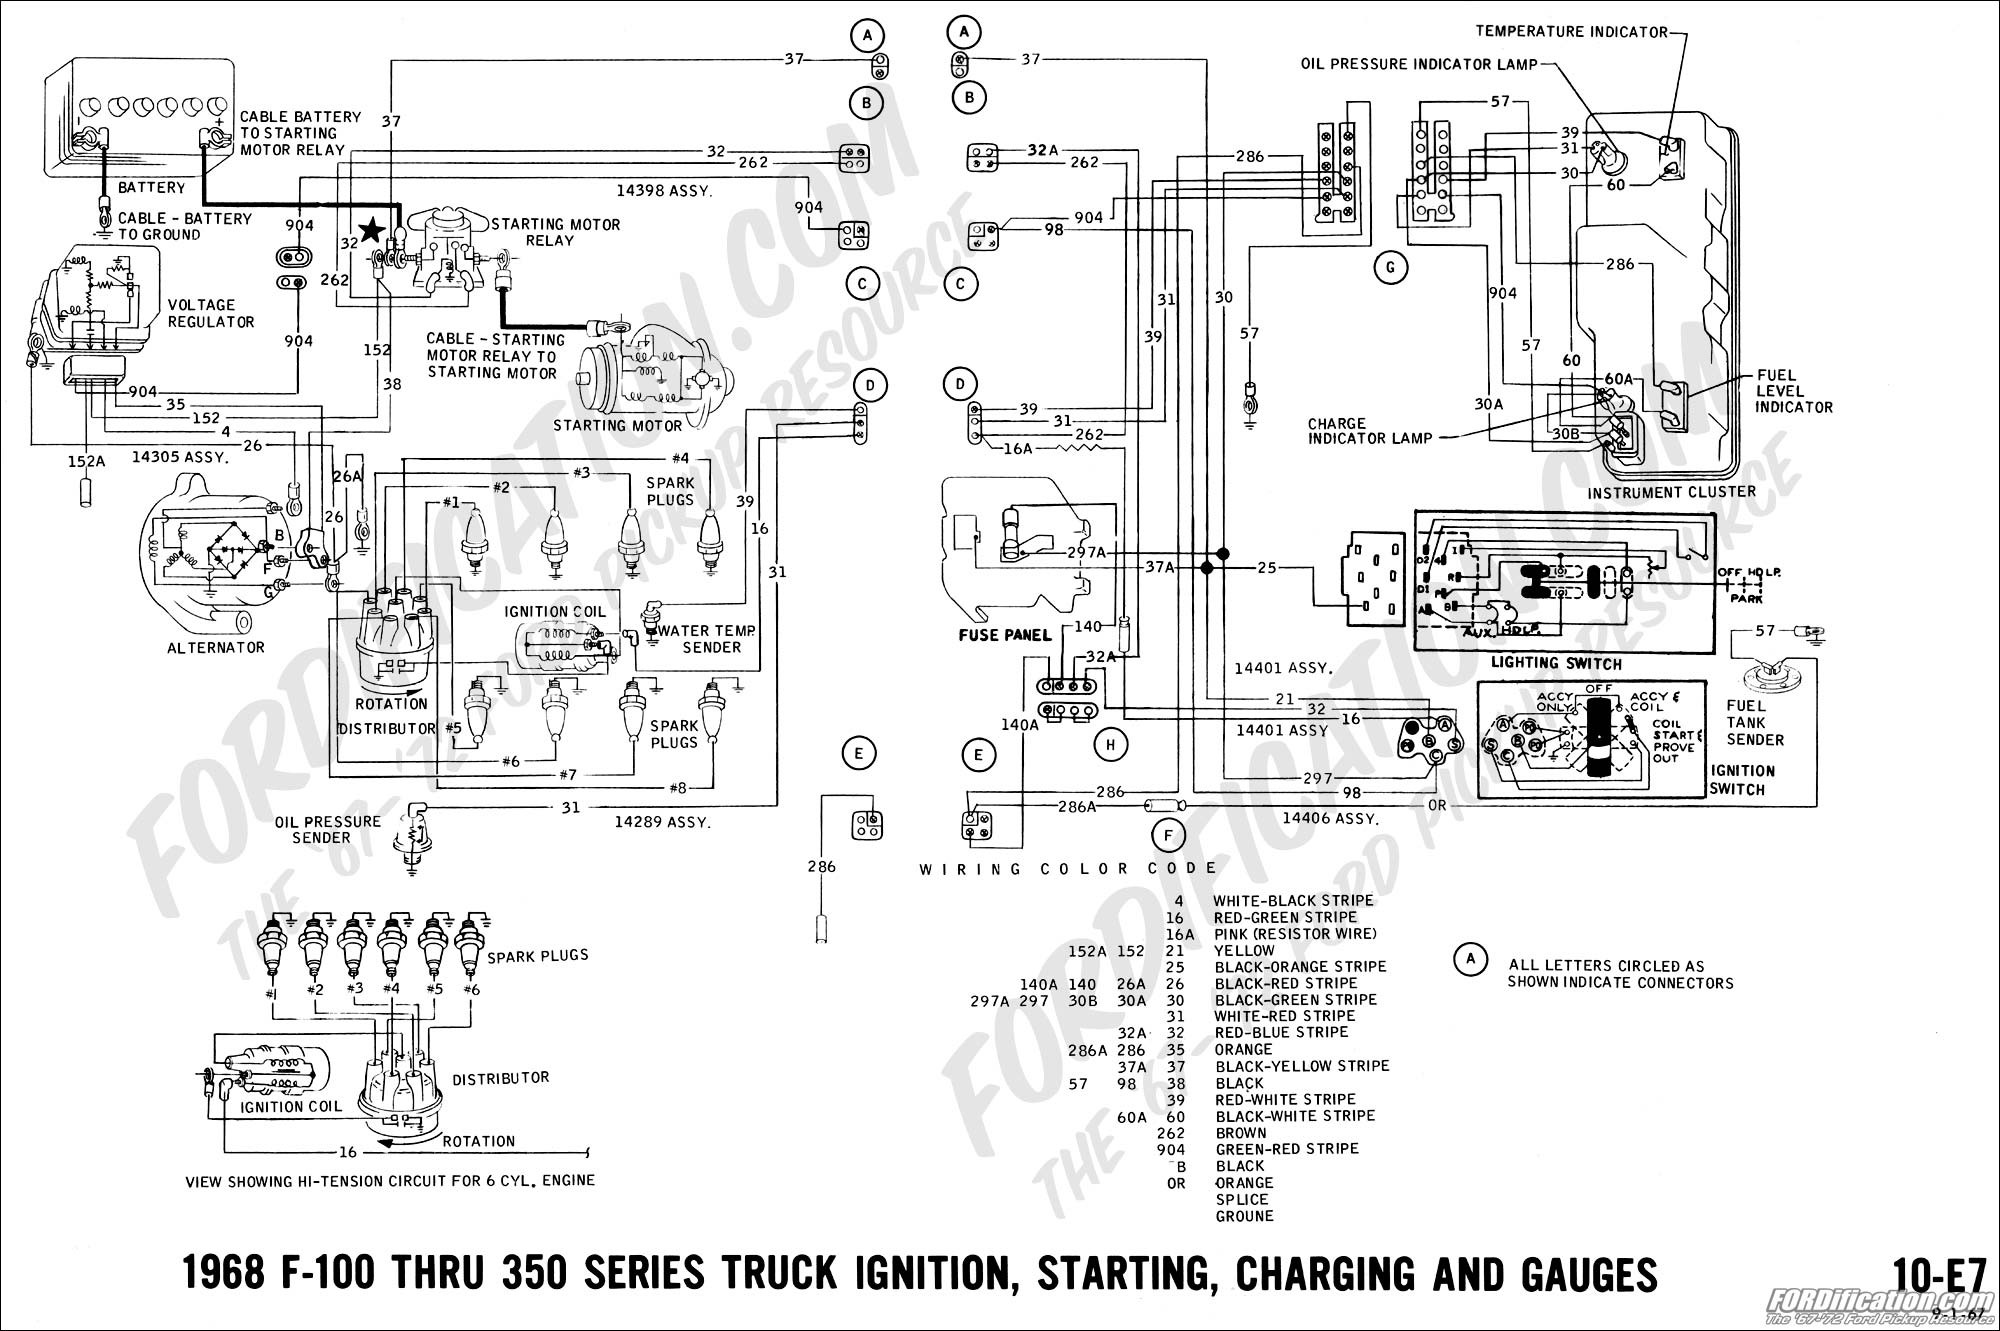 05 Ford F 150 Engine Diagram Wiring Diagrams Data Base 2004 5 4 Triton 2 Rh Homesecurity Press On Oem Parts